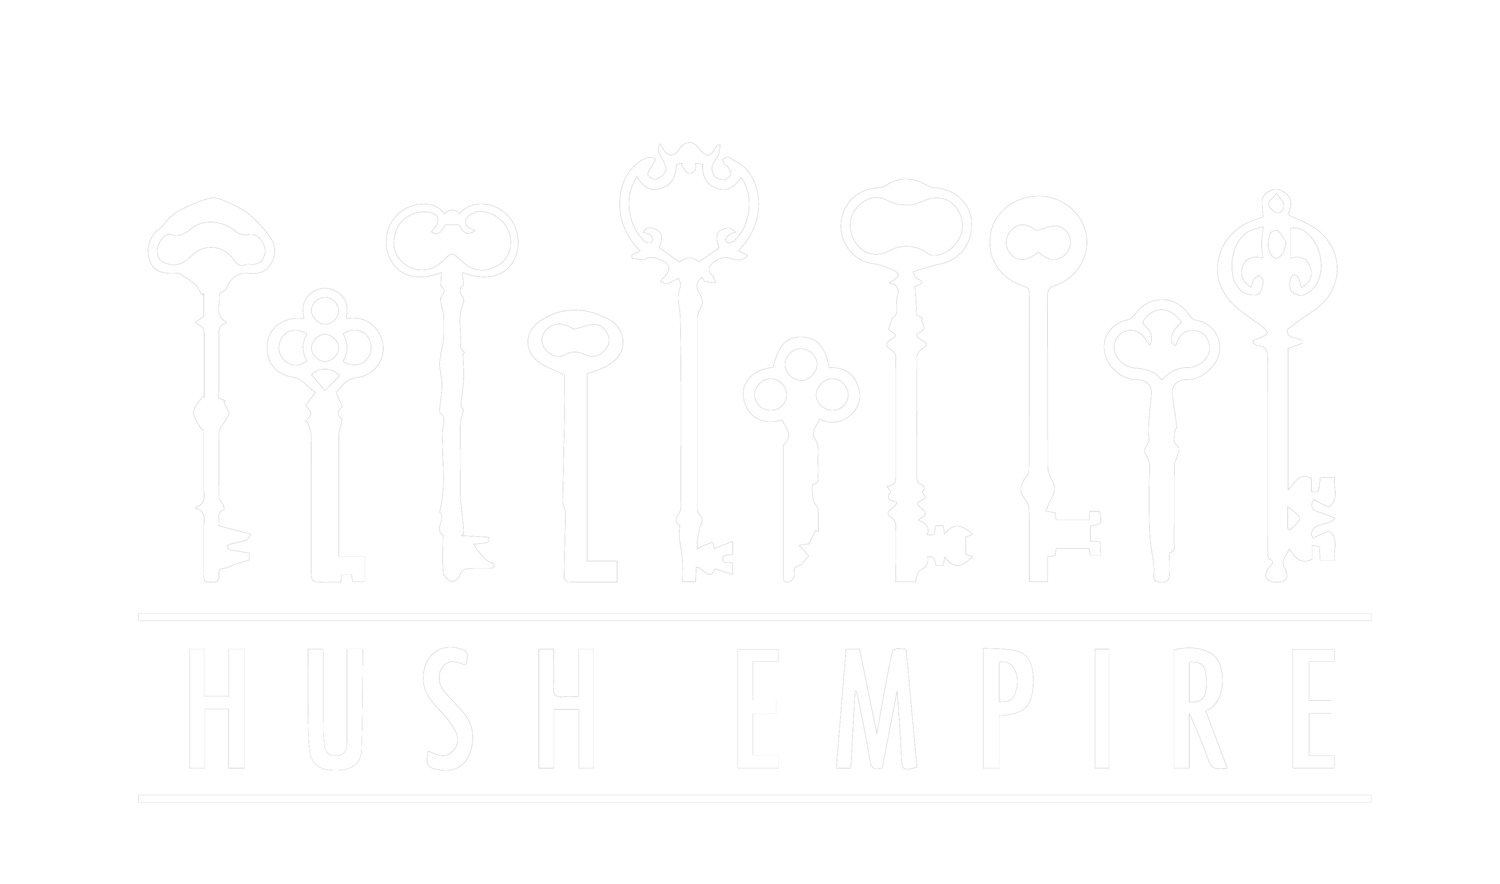 Hush Empire